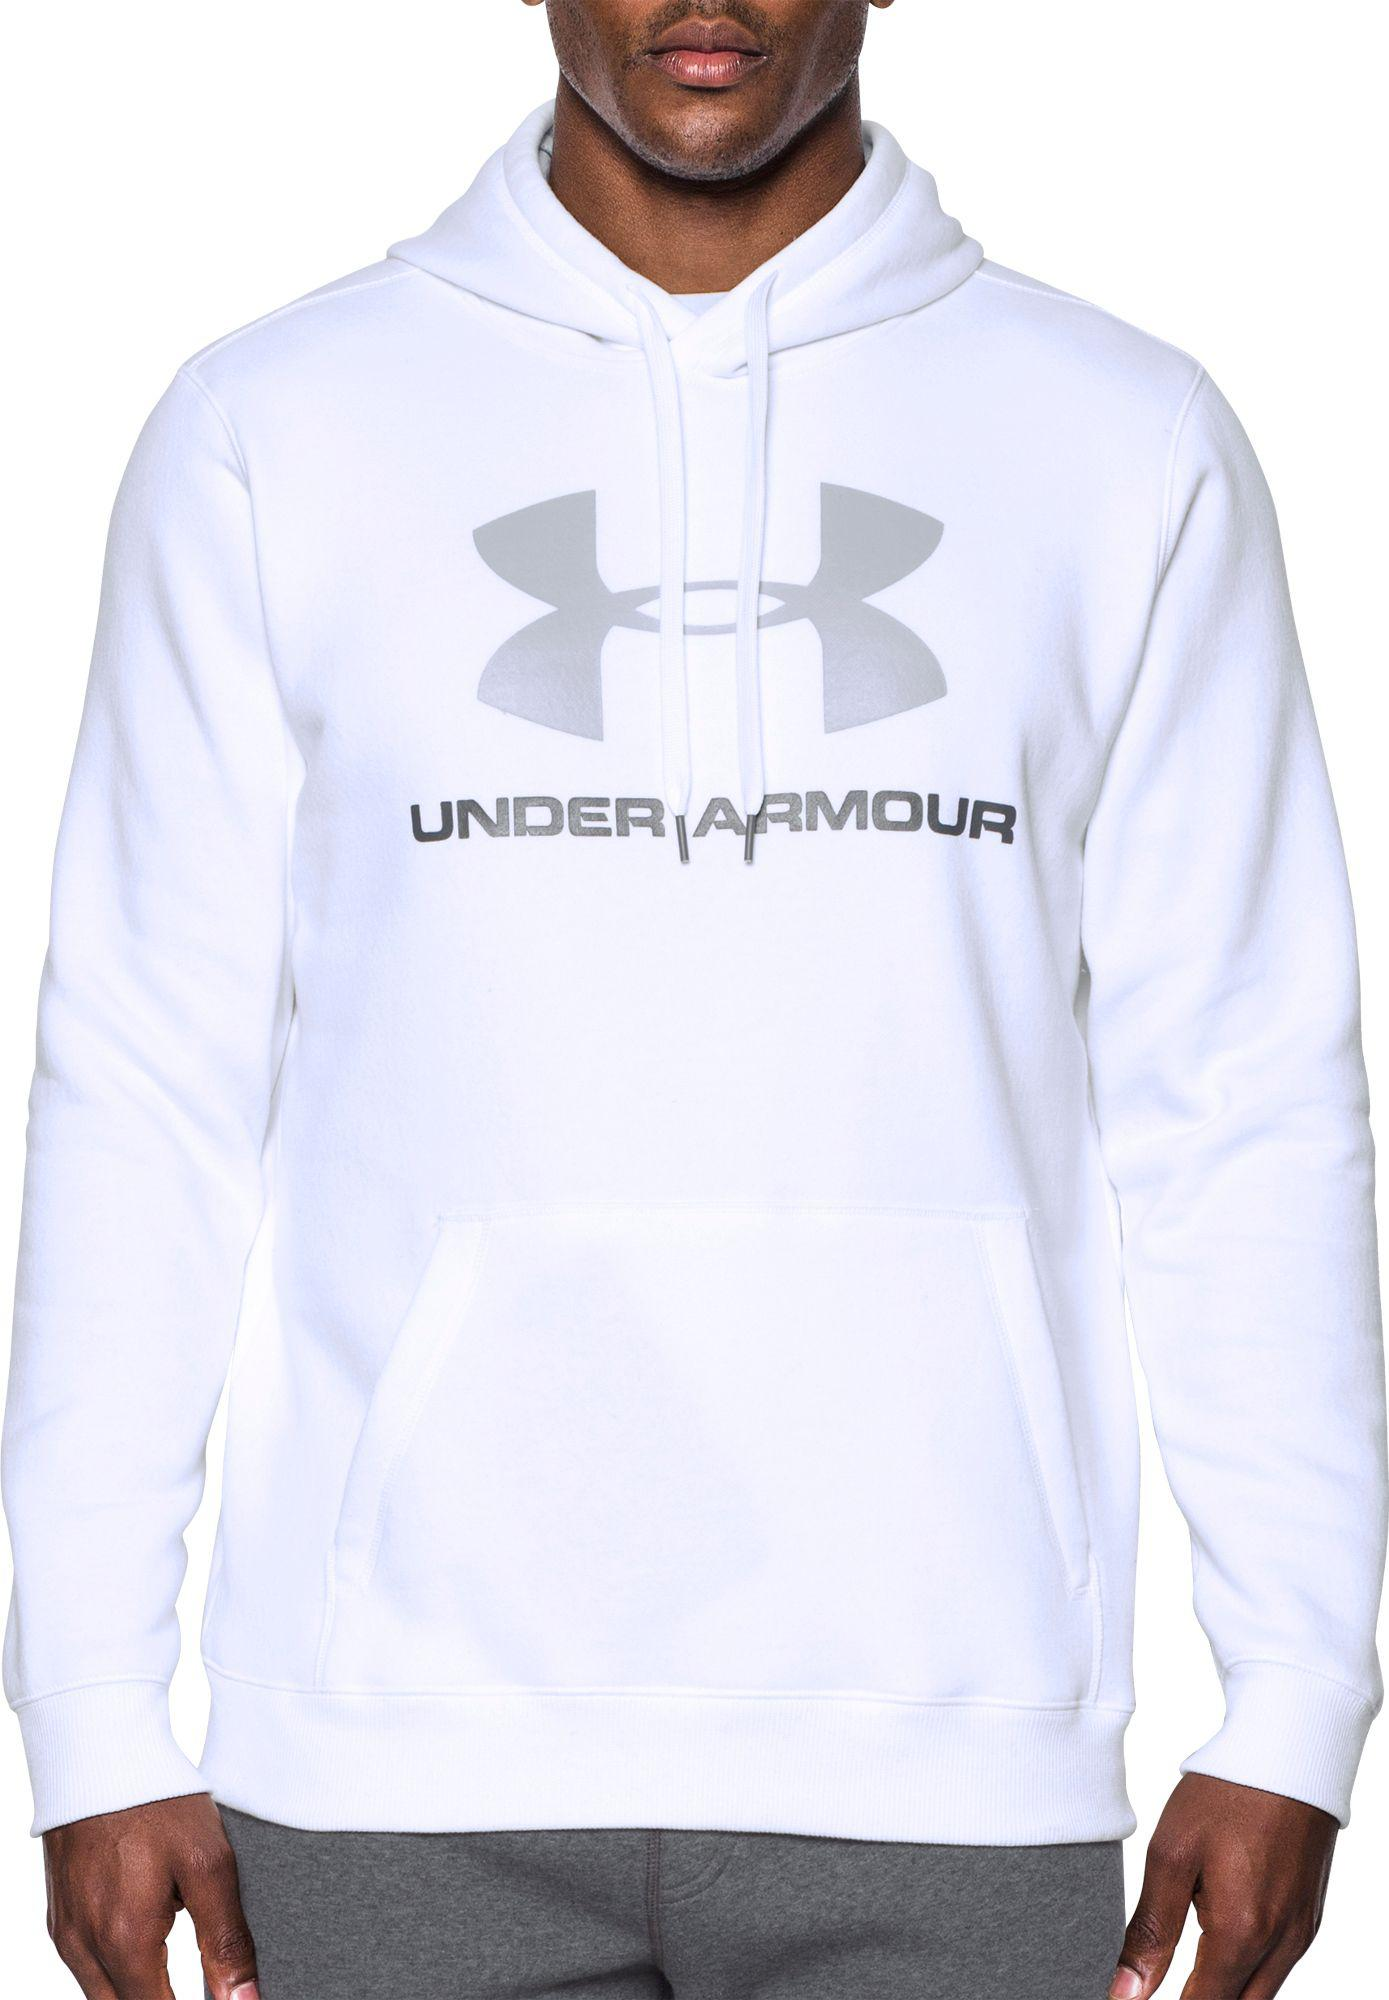 f3841617c Mens Under Armour Hooded Sweatshirts – EDGE Engineering and ...